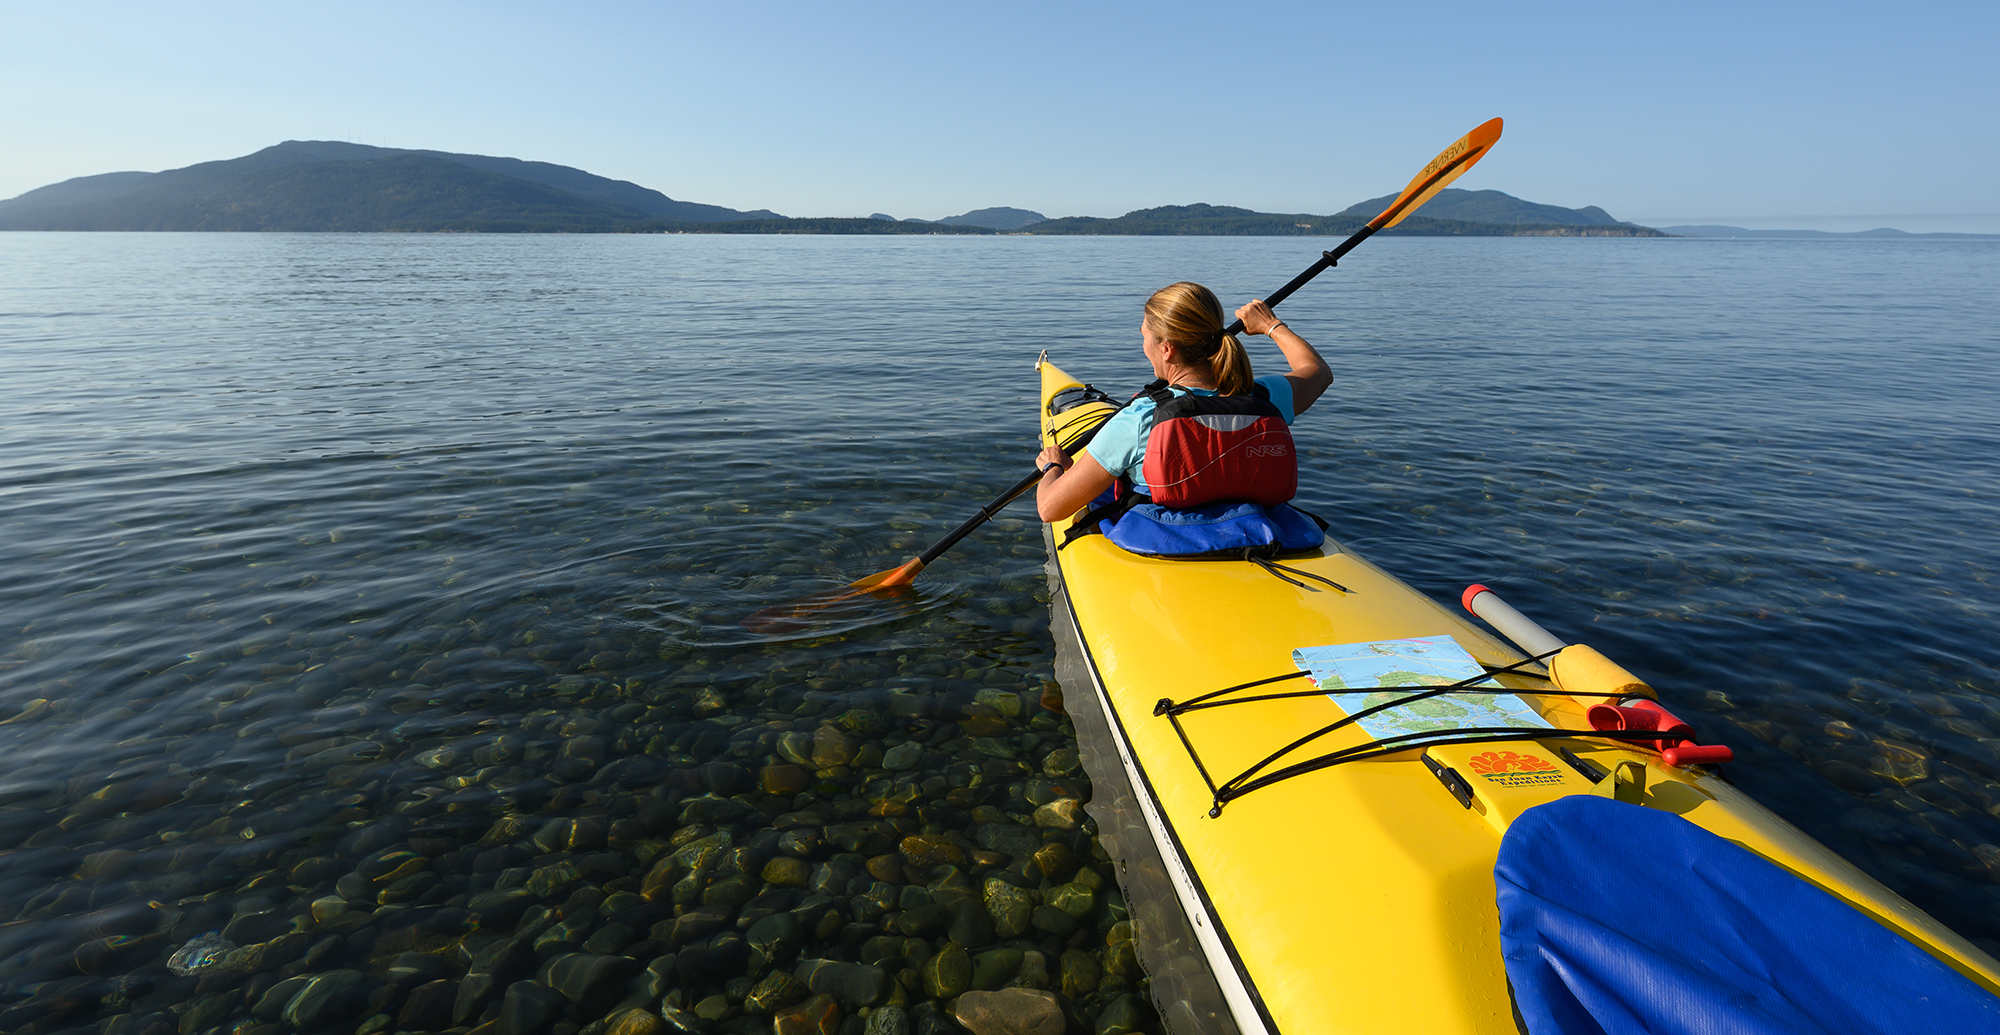 three-quarter view of yellow kayak in lower right corner with person paddling in front